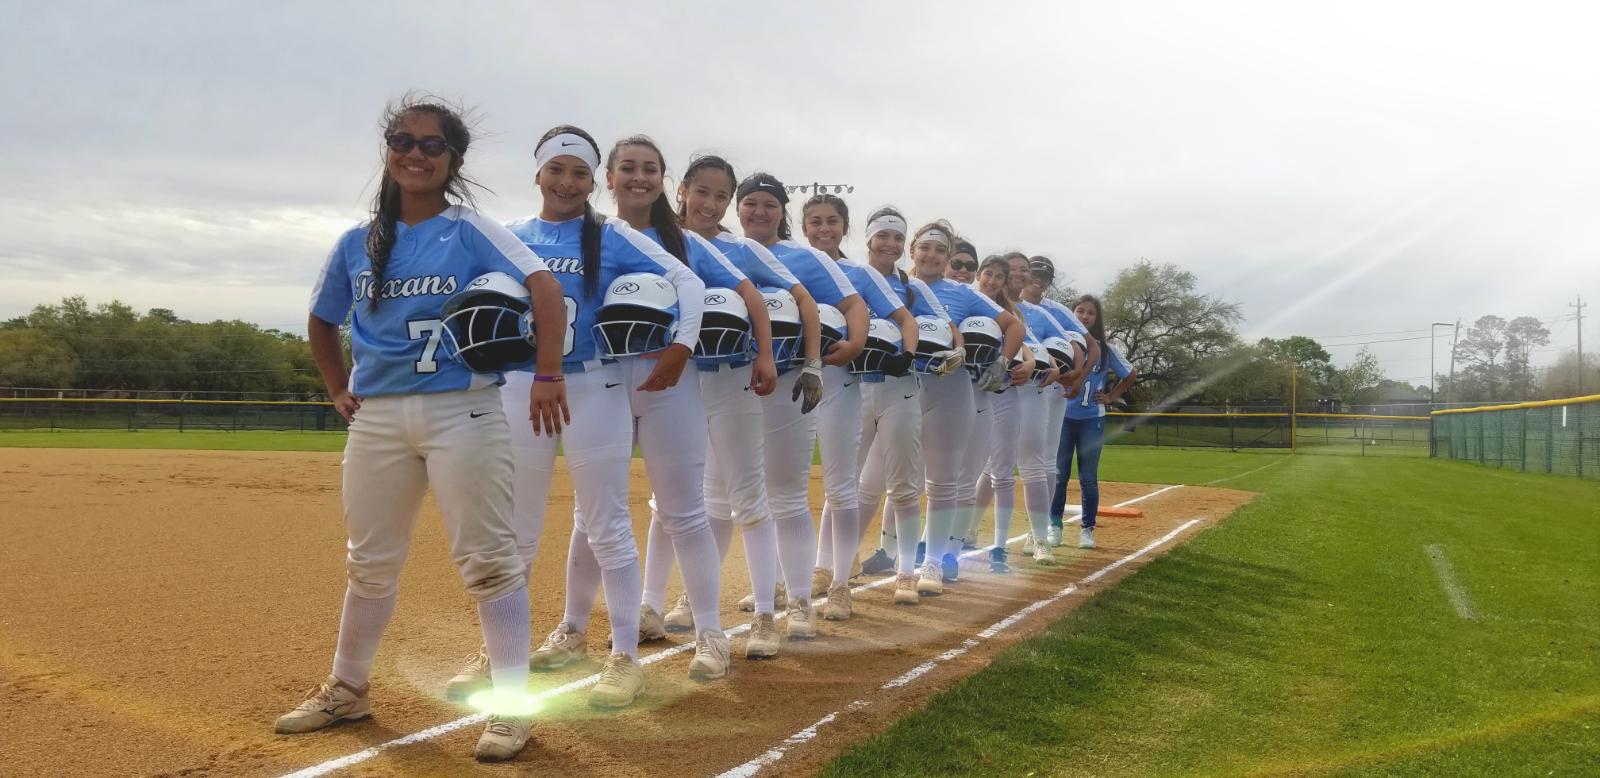 2020 Softball Season – Tradition, Memoirs, and Celebration